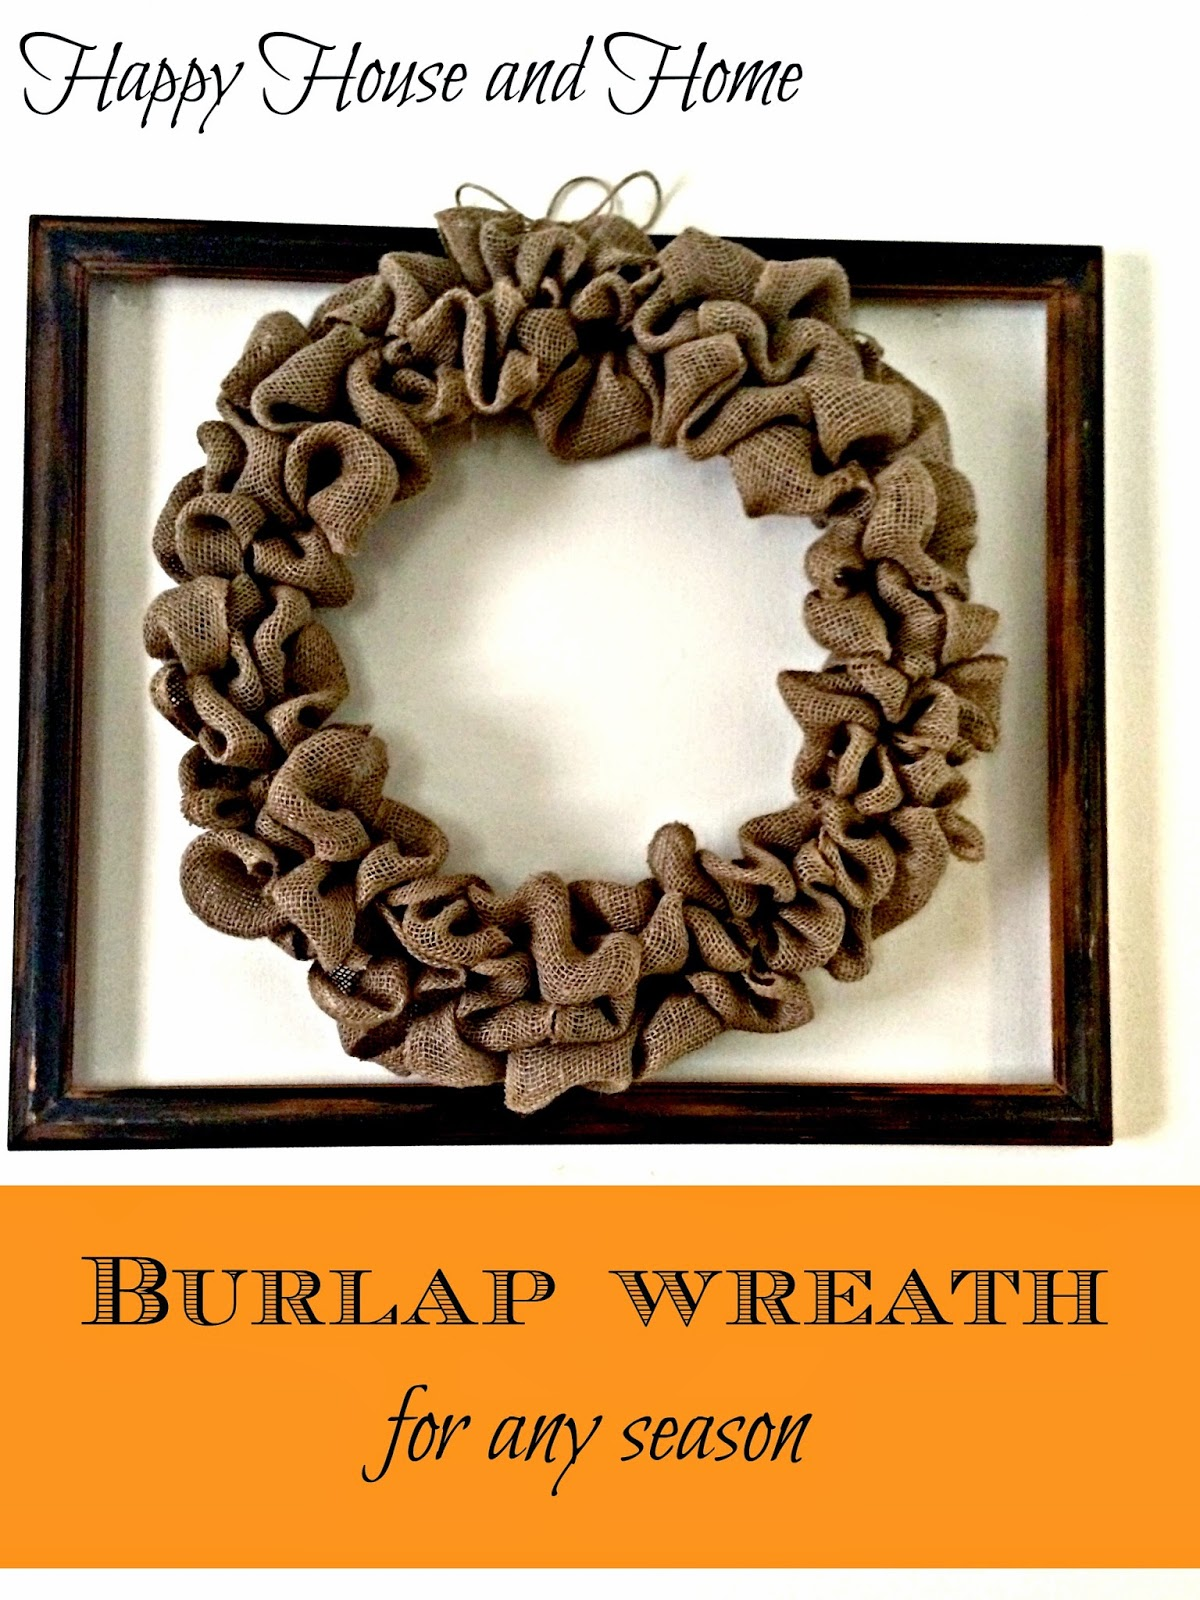 burlap wreath, wire wreath frame, wreaths, wreath for any season